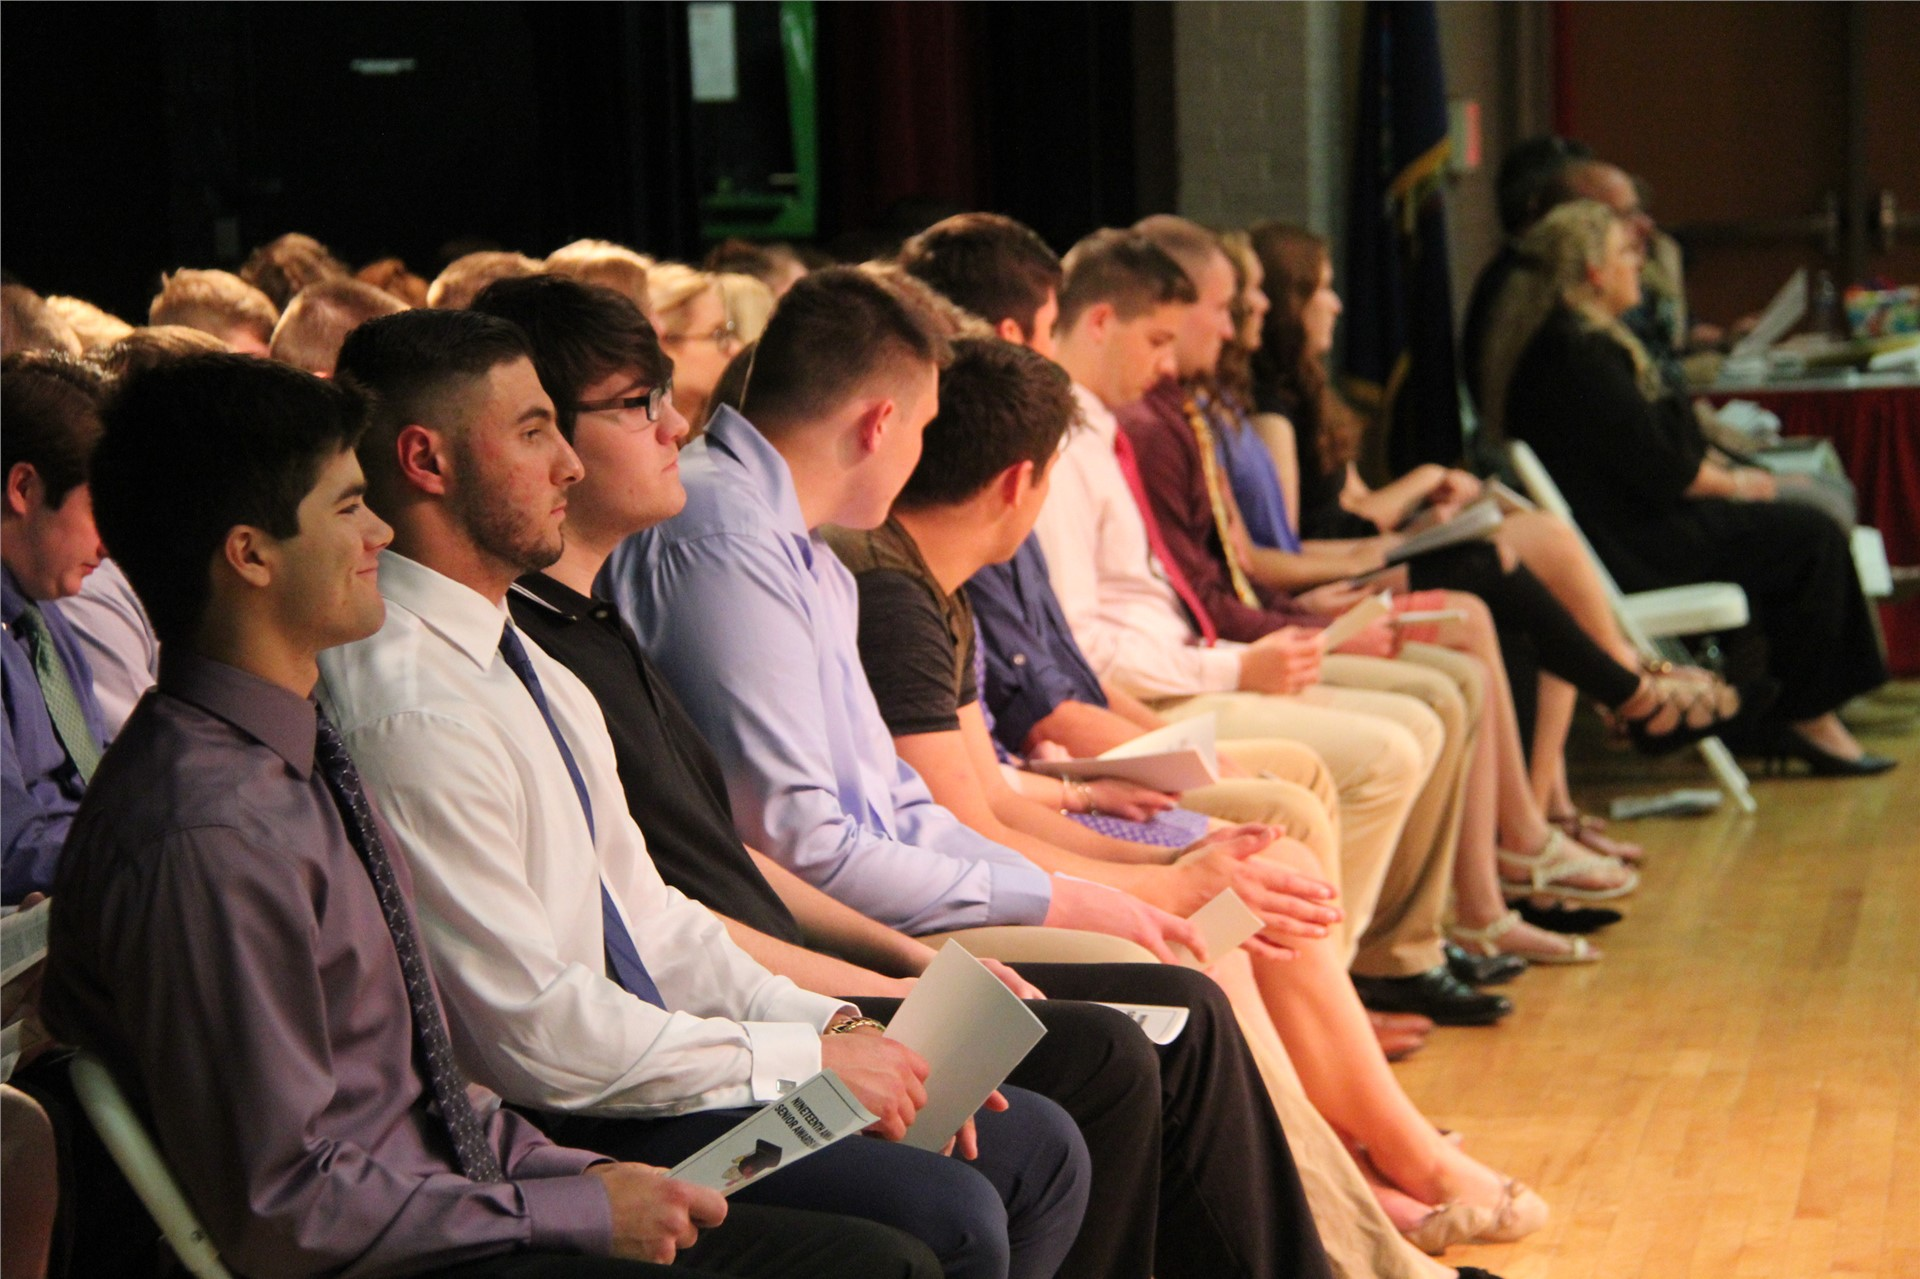 students sit in chairs on stage at awards ceremony